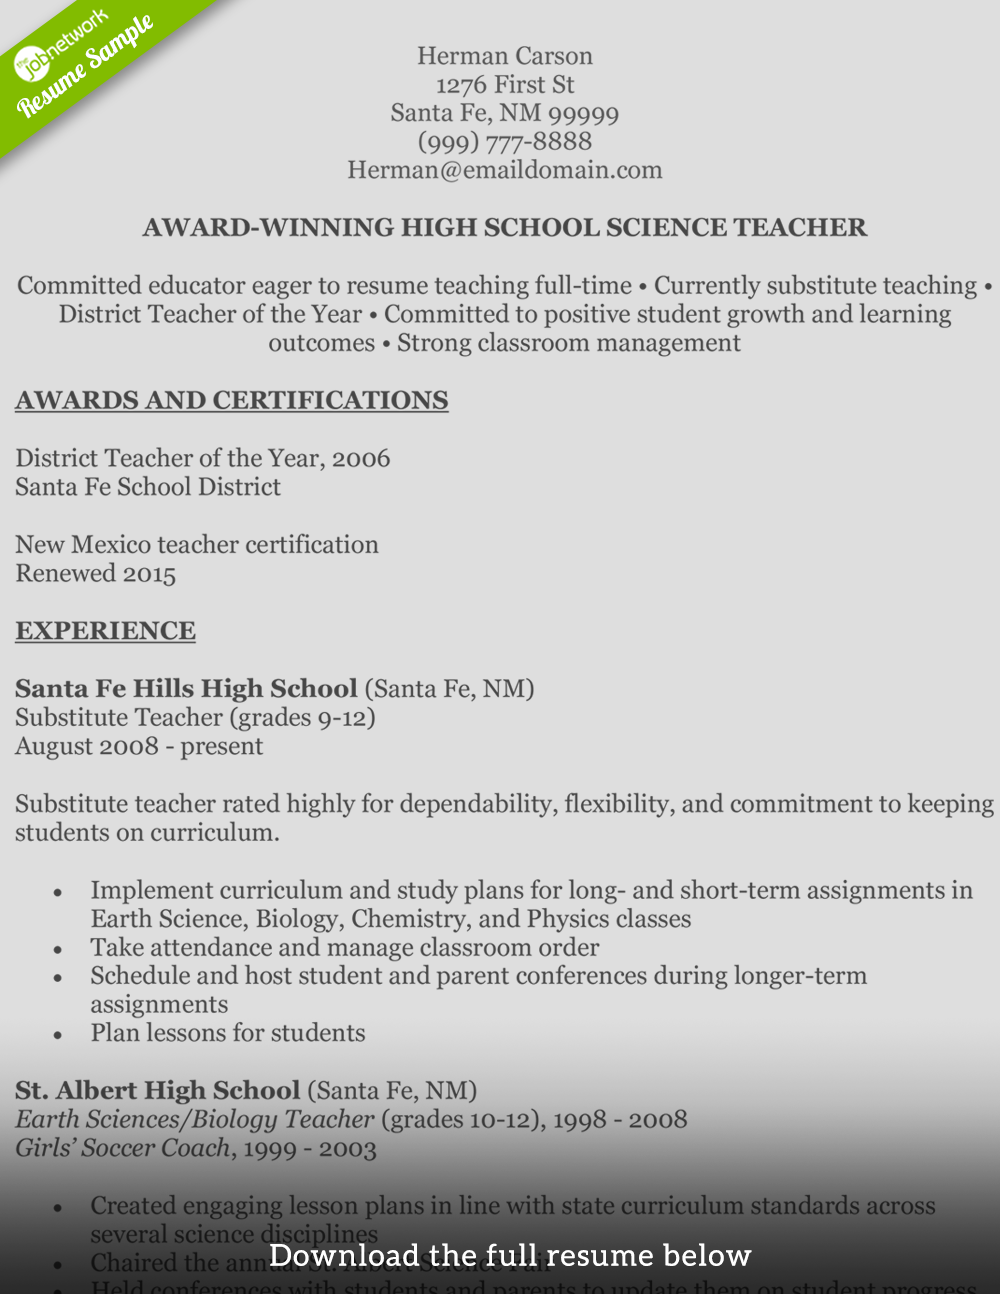 teaching resume herman carson. Resume Example. Resume CV Cover Letter